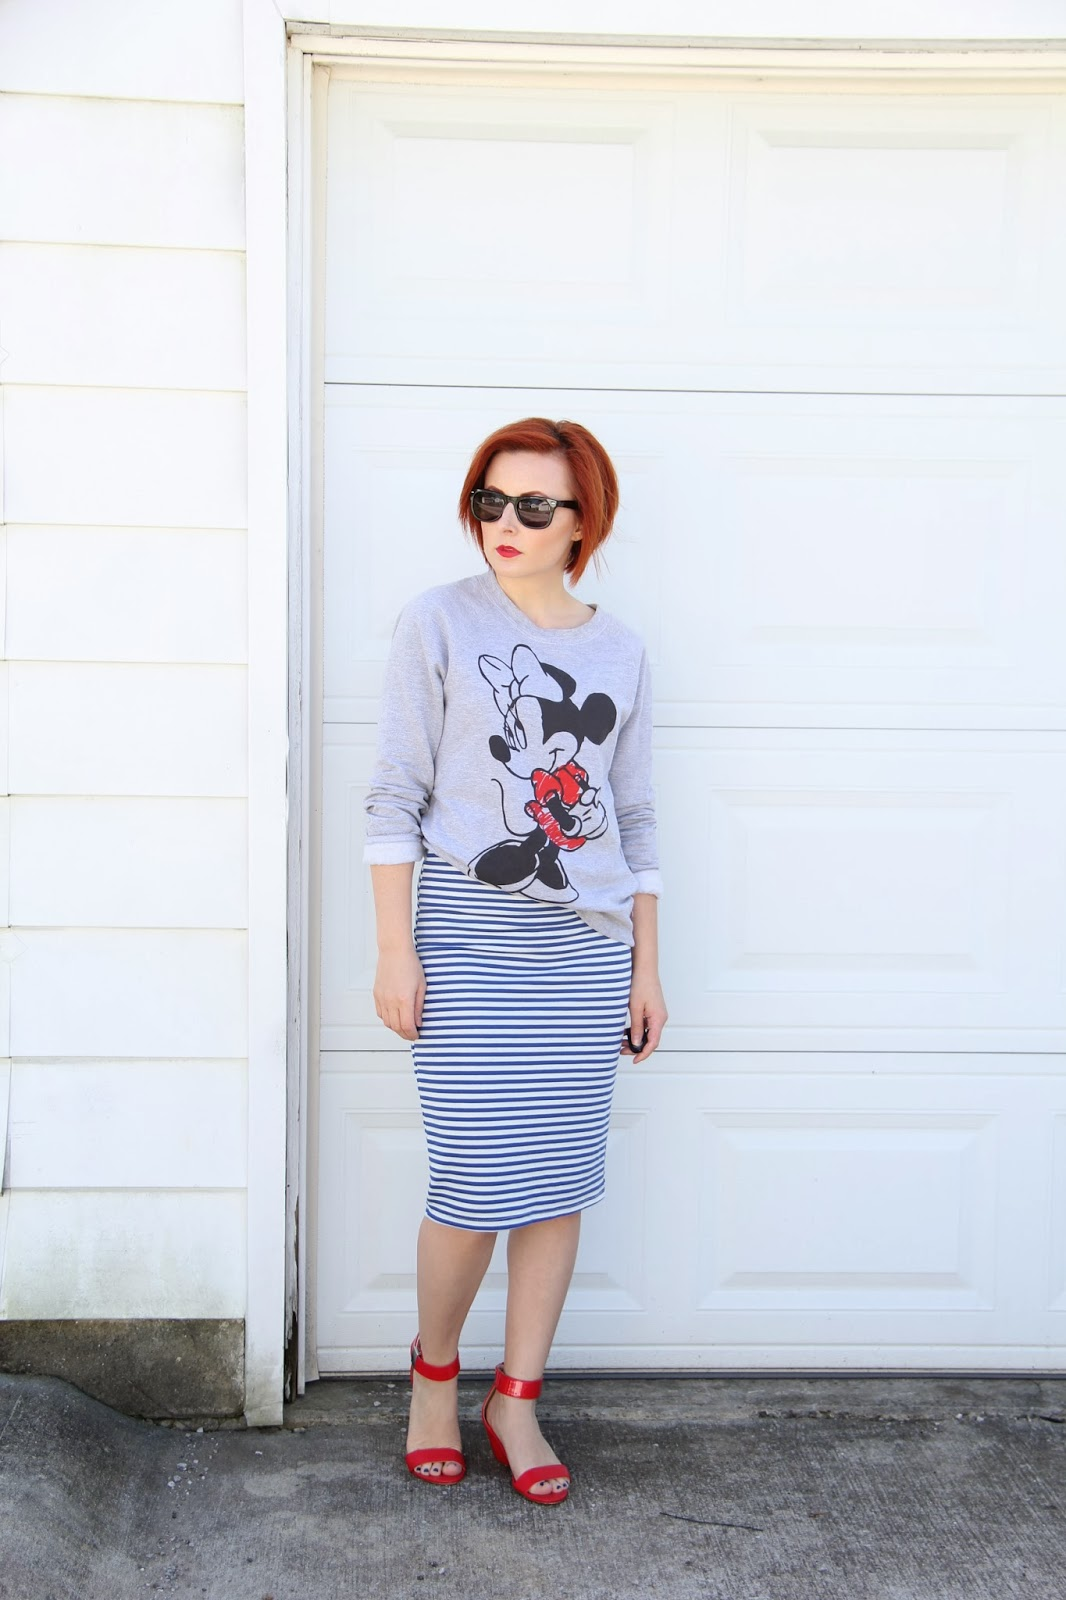 Thrift And Shout: Cute Outfit Of The Day: Sweatshirt Chic